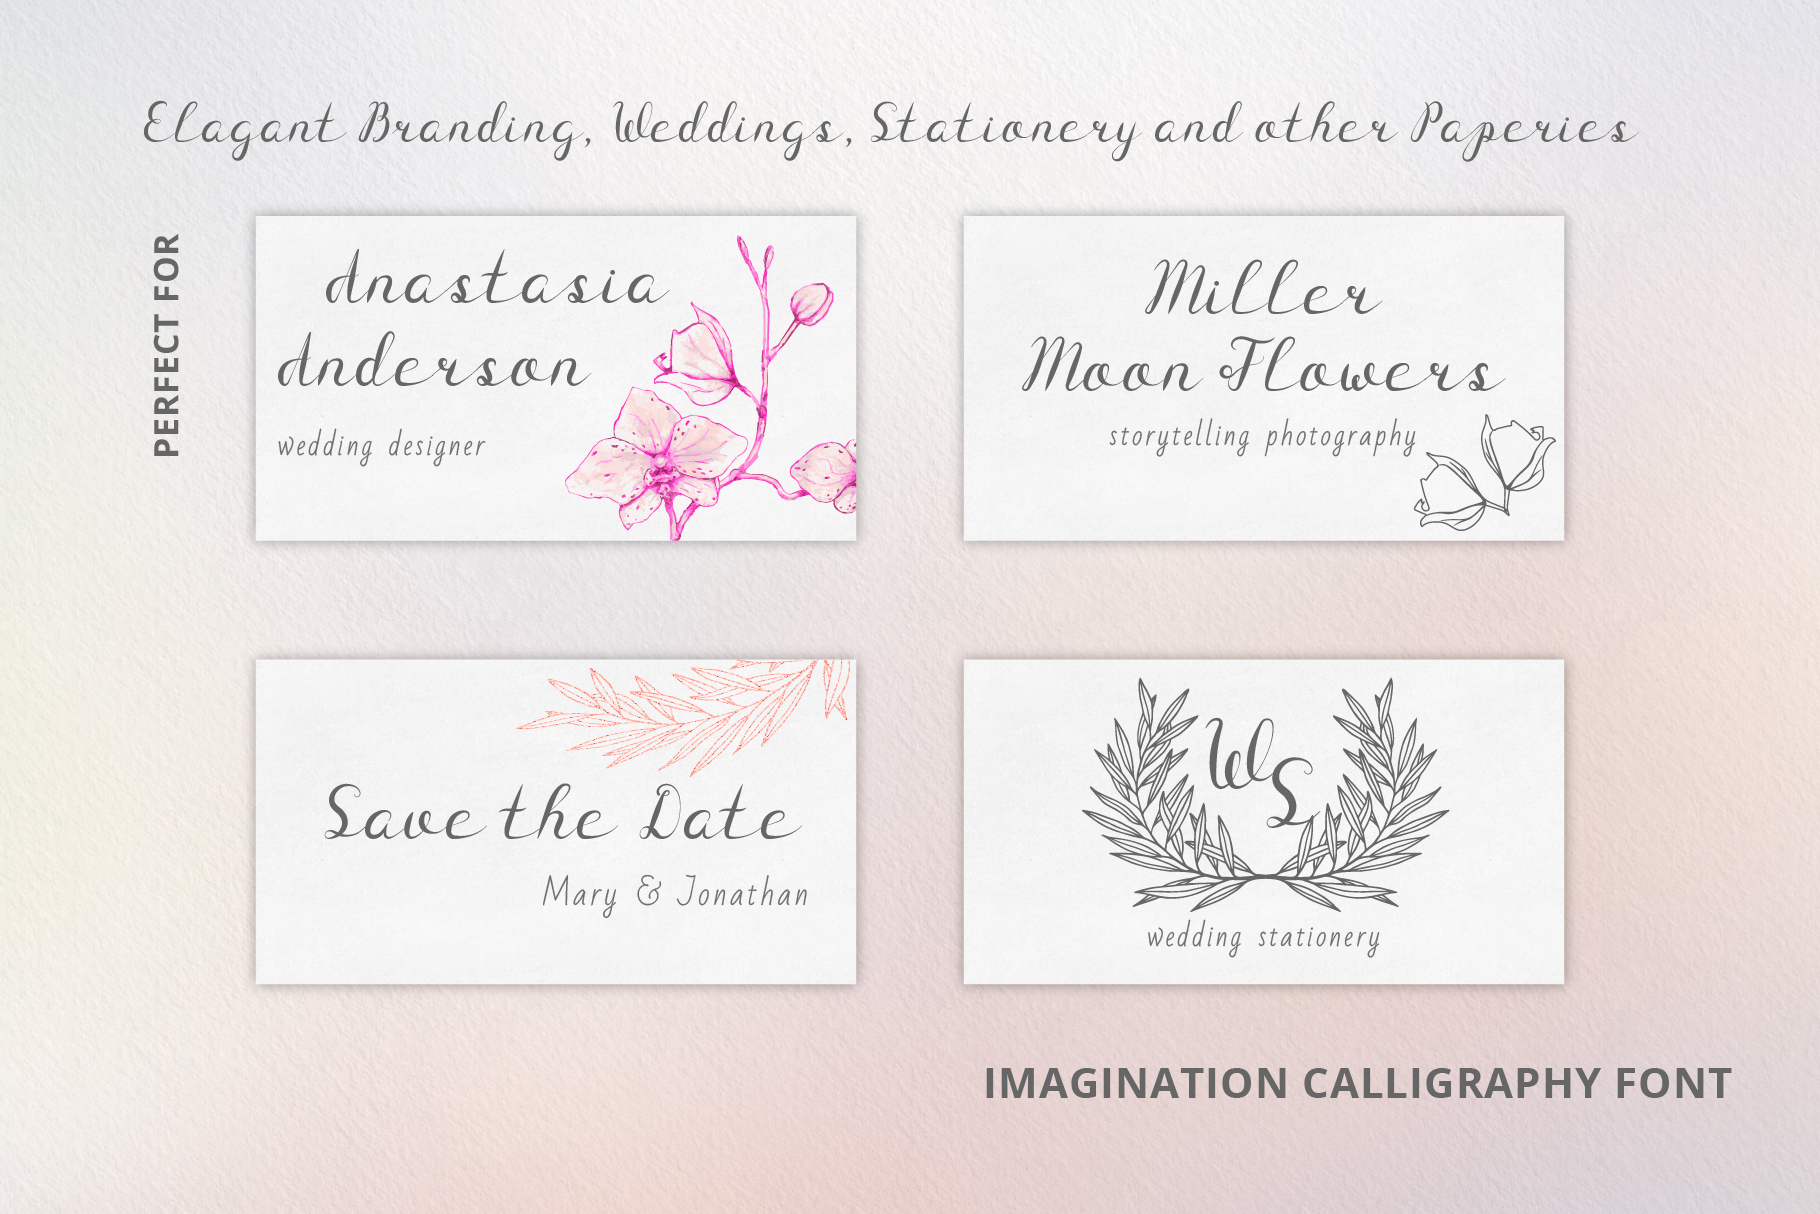 Imagination Calligraphy Font example image 5